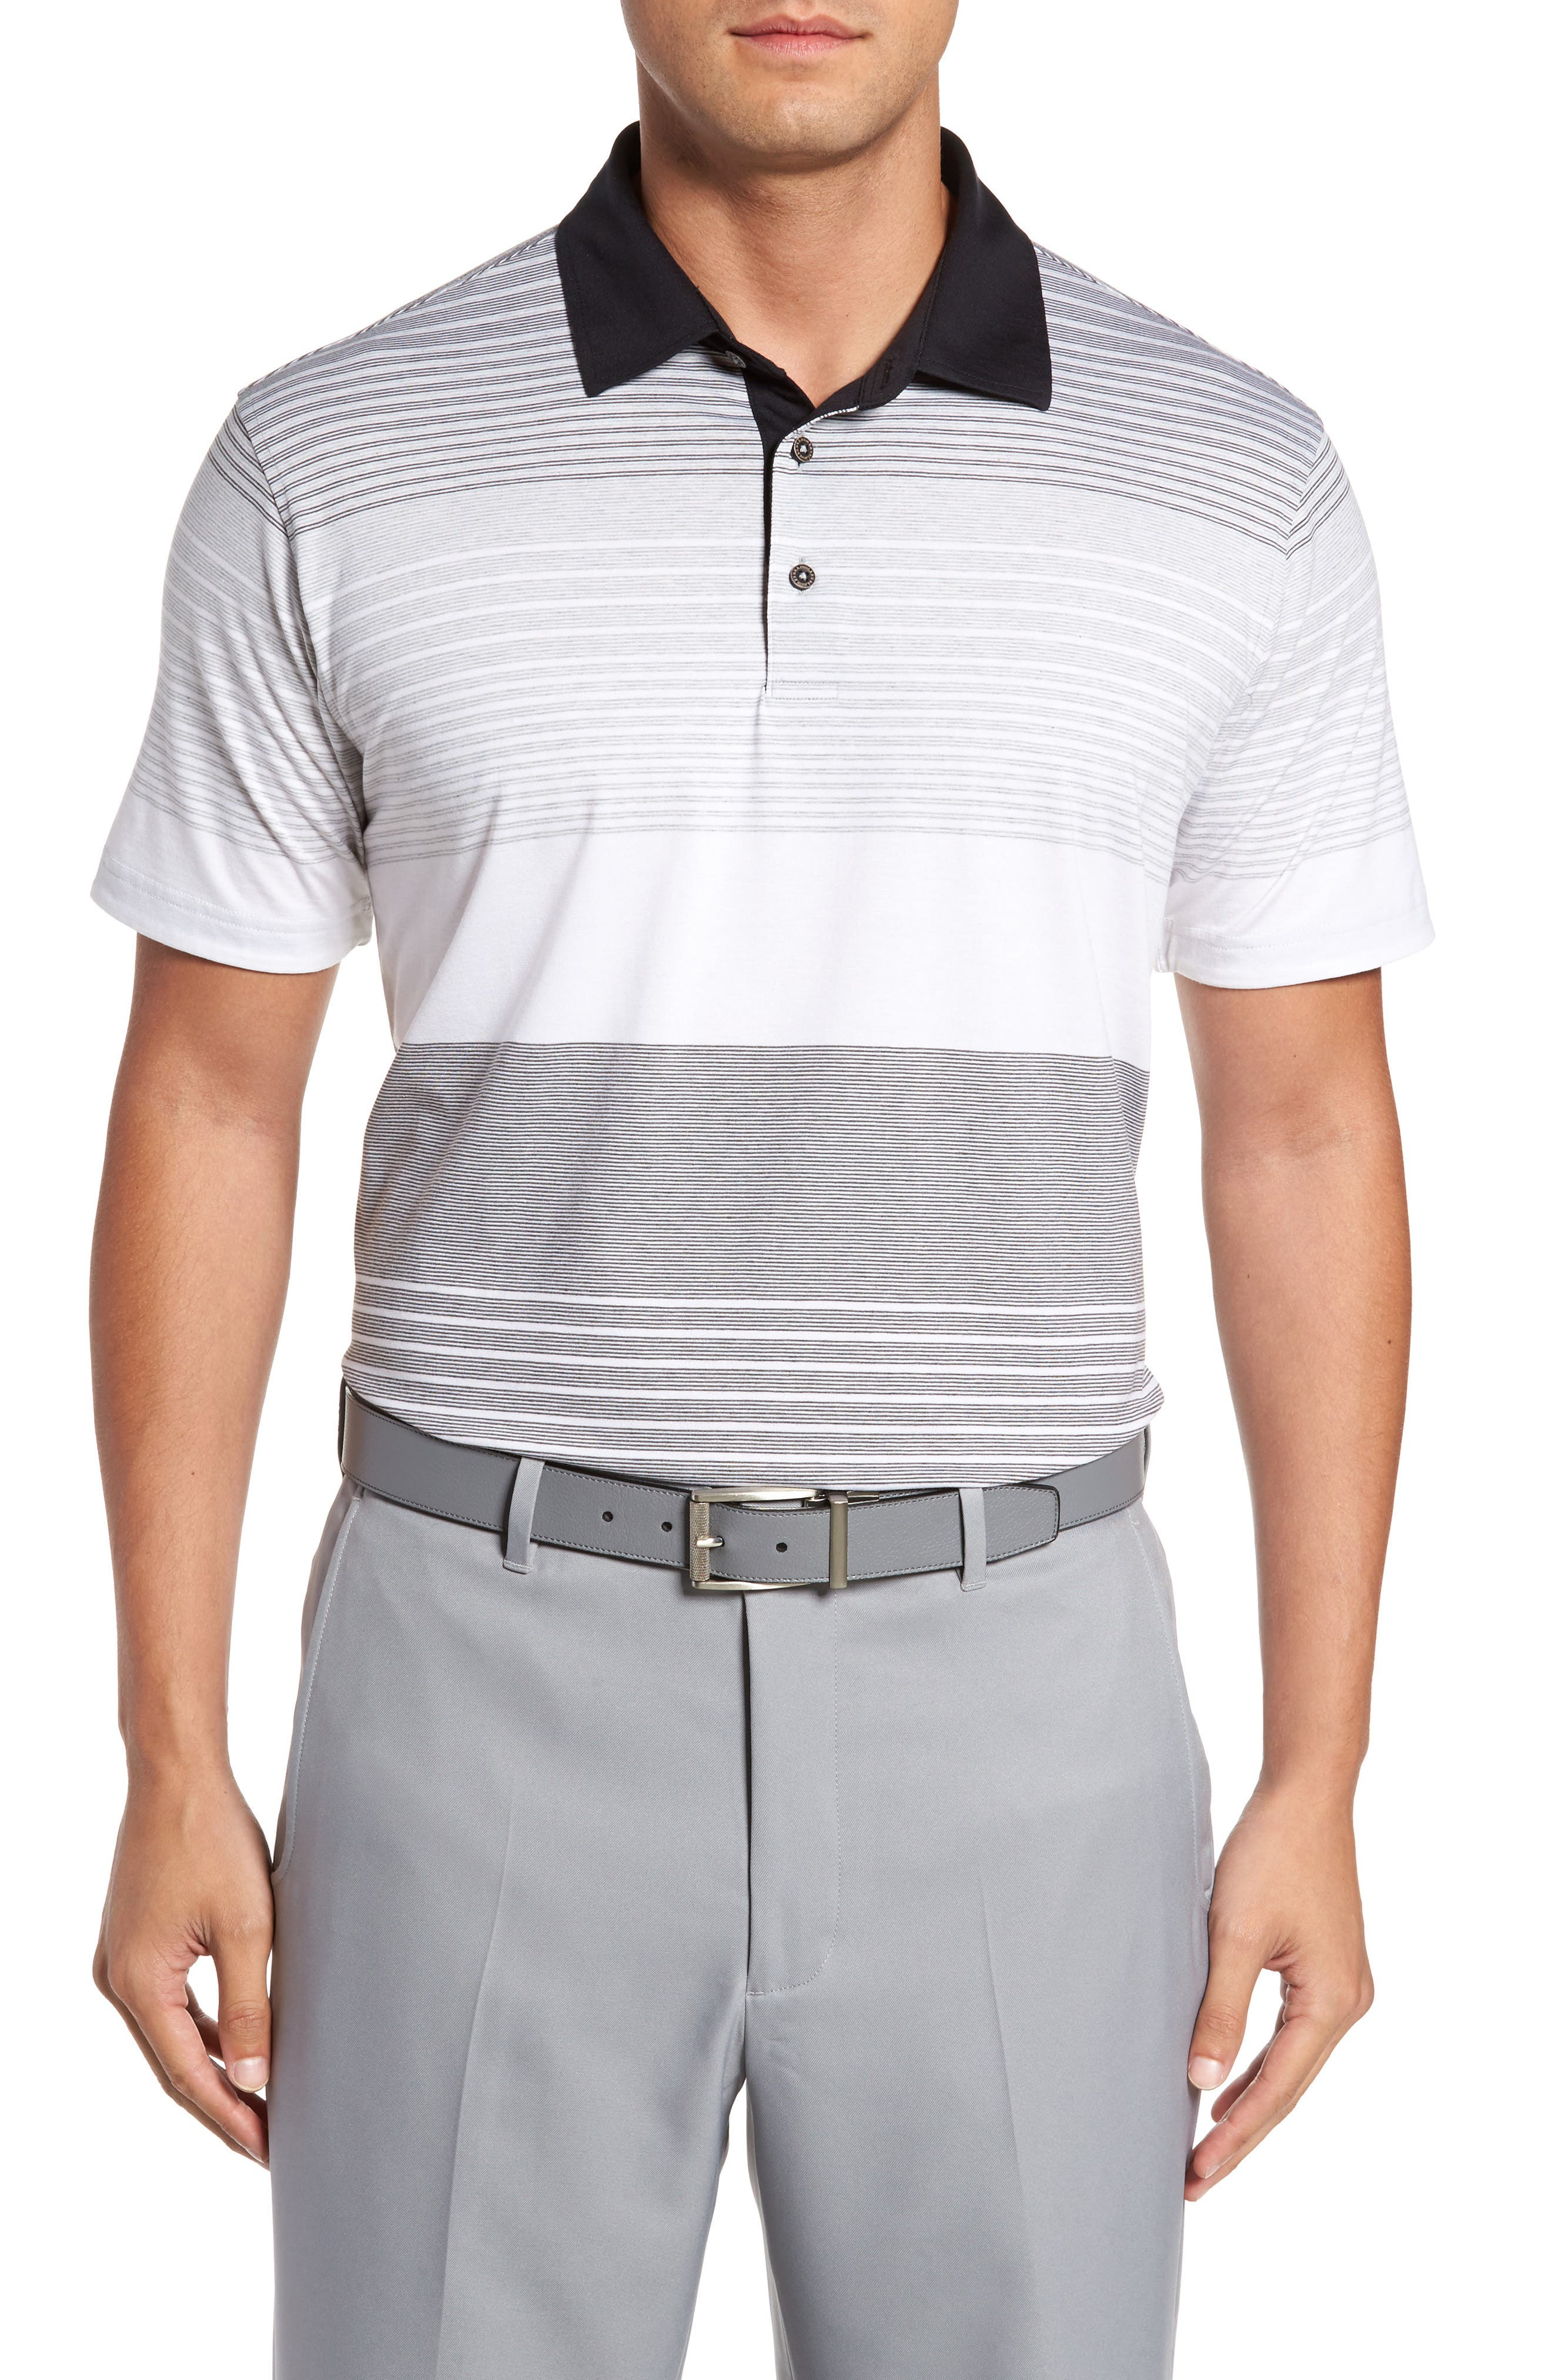 Bobby Jones R18 Bainbridge Gradient Polo